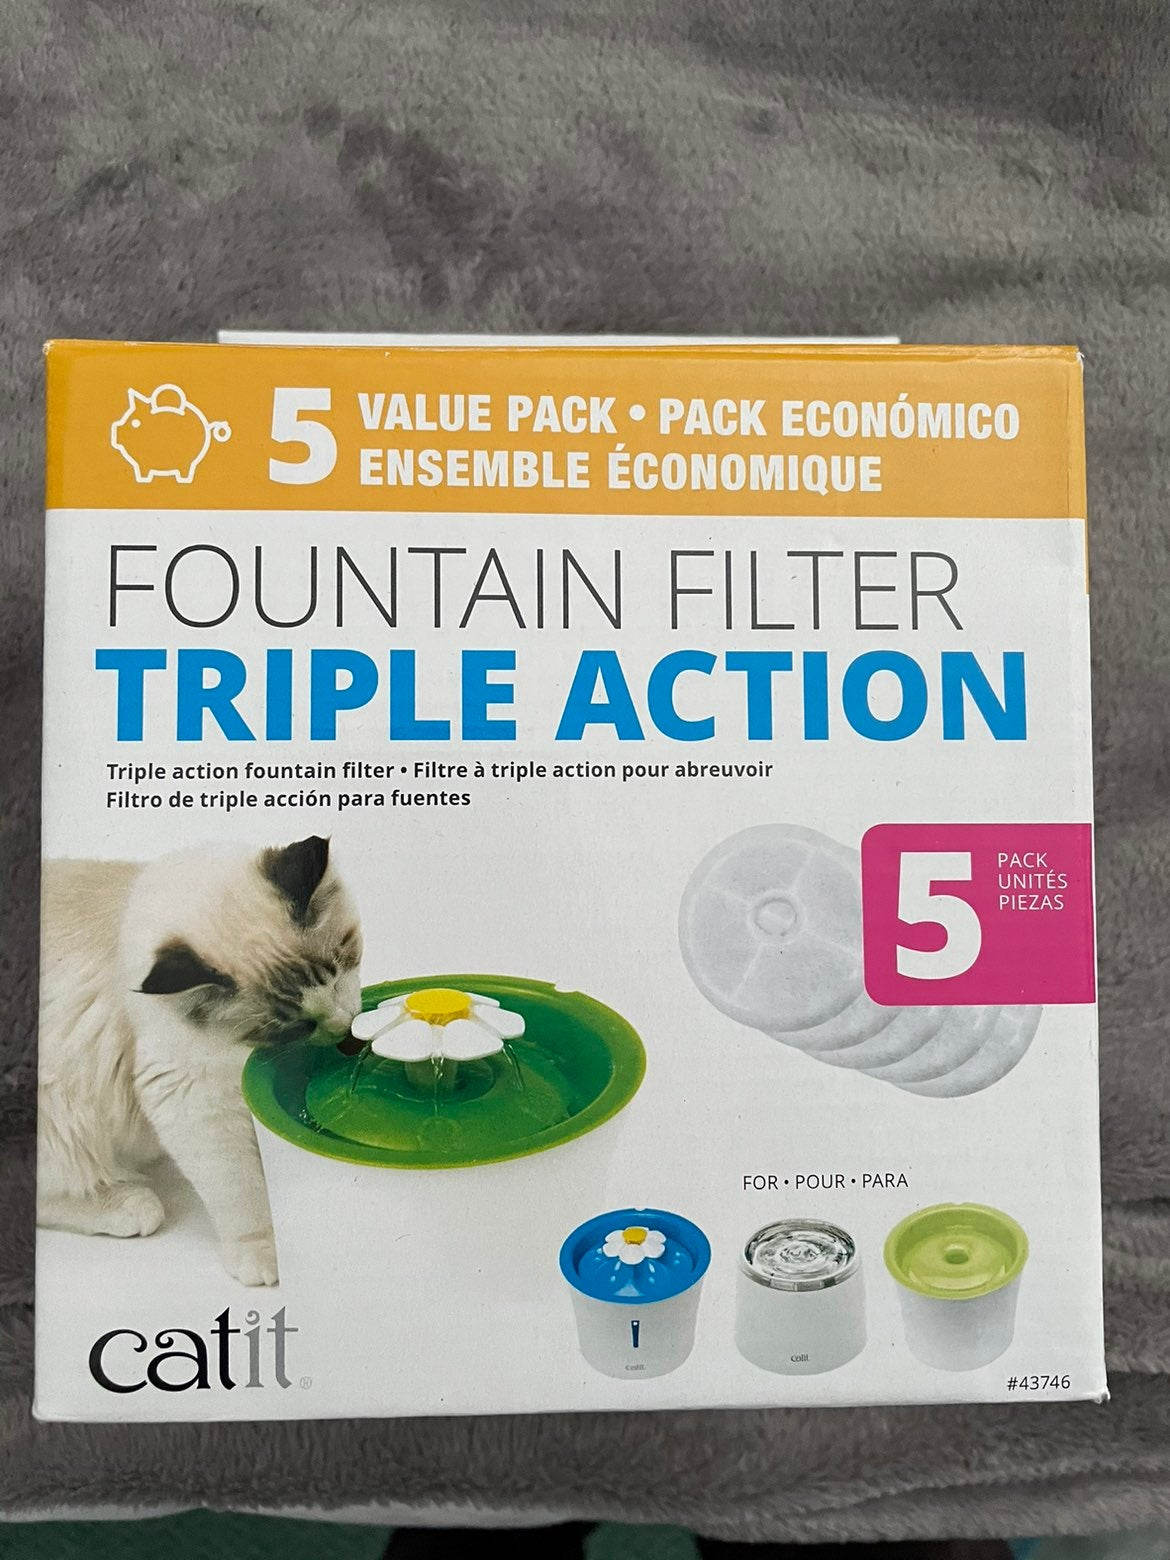 CAT Fountain filter triple action